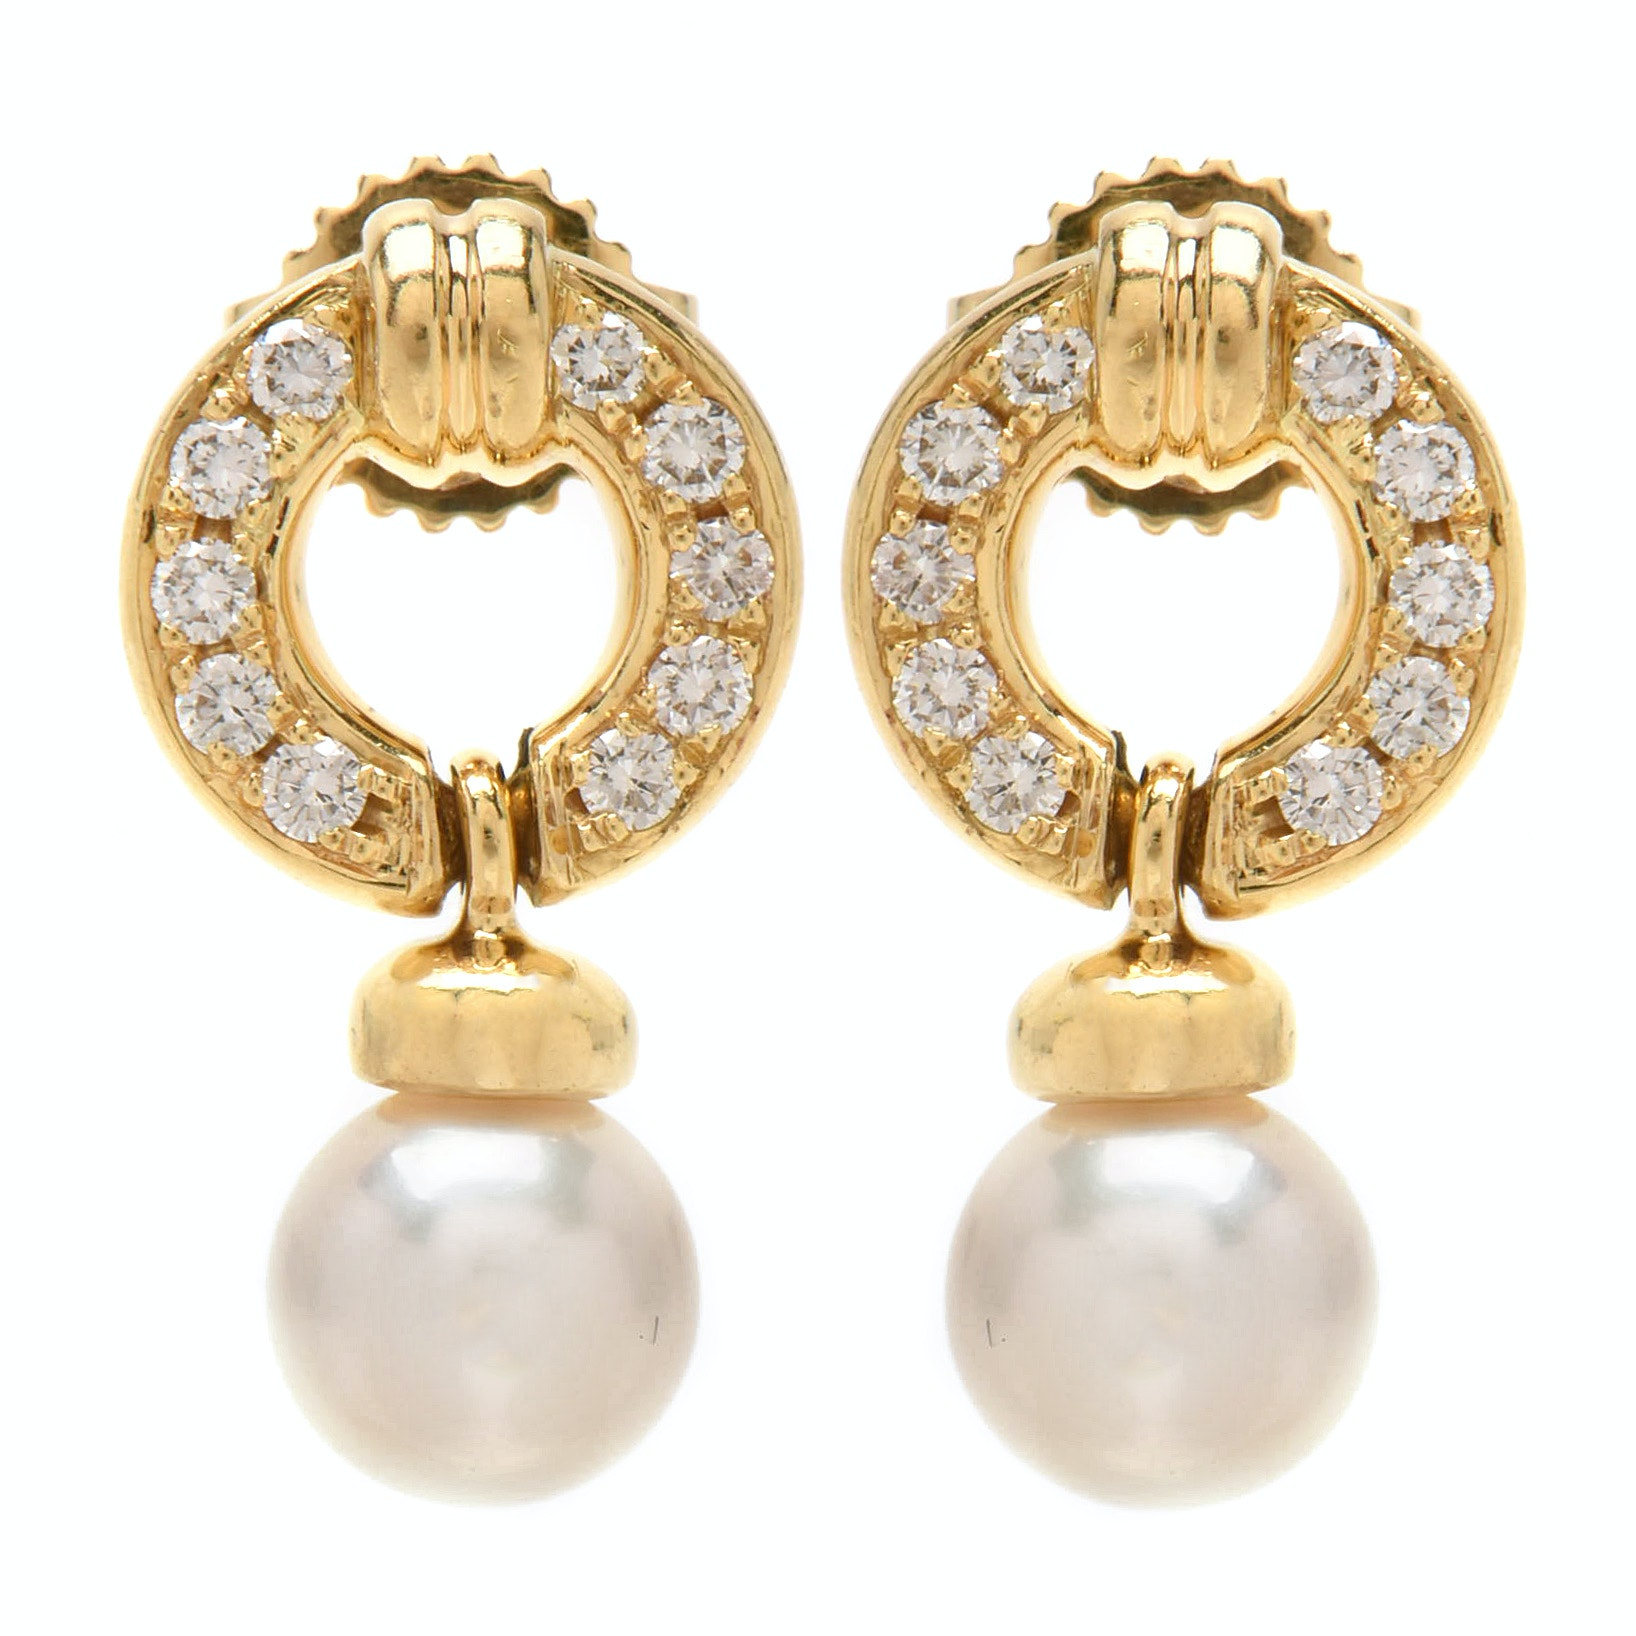 Tiffany & Co 18K Yellow Gold Pearl and Diamond Pierced Earrings